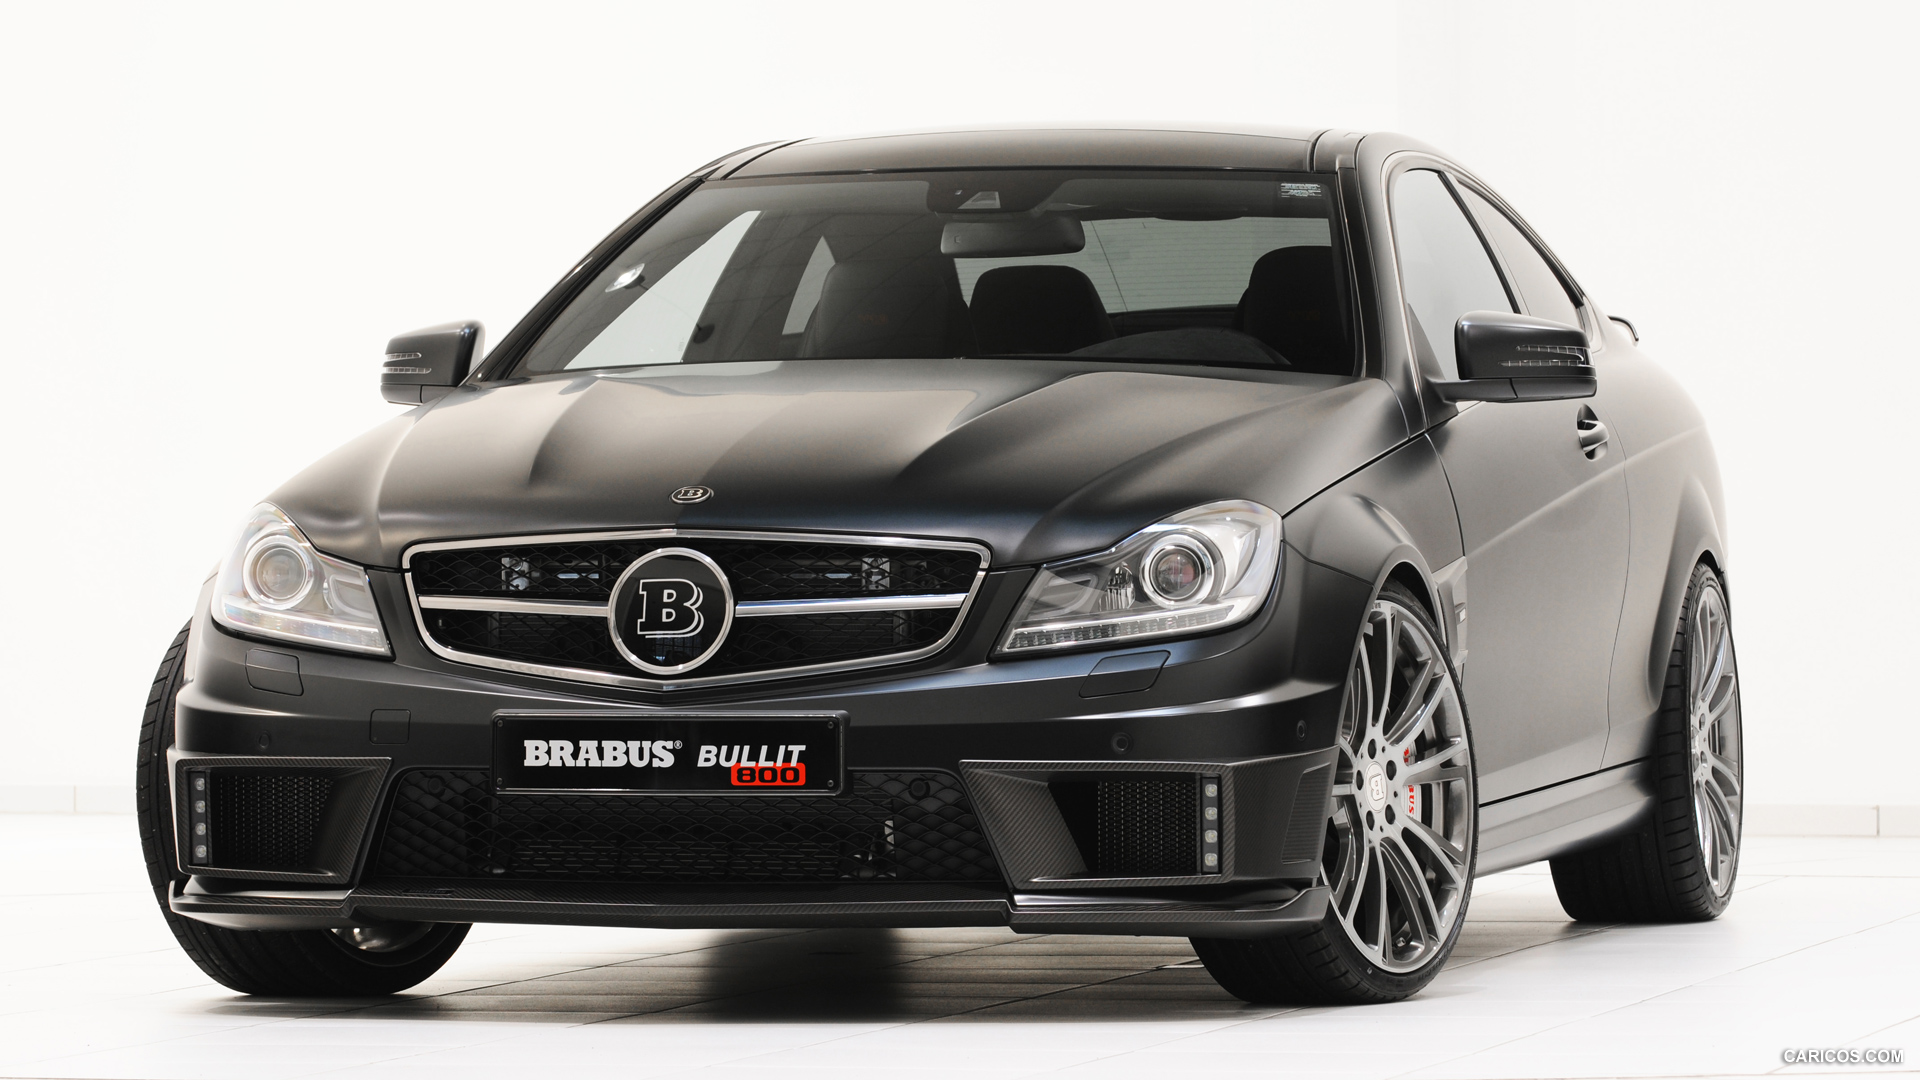 brabus bullit w204 photos photogallery with 58 pics. Black Bedroom Furniture Sets. Home Design Ideas